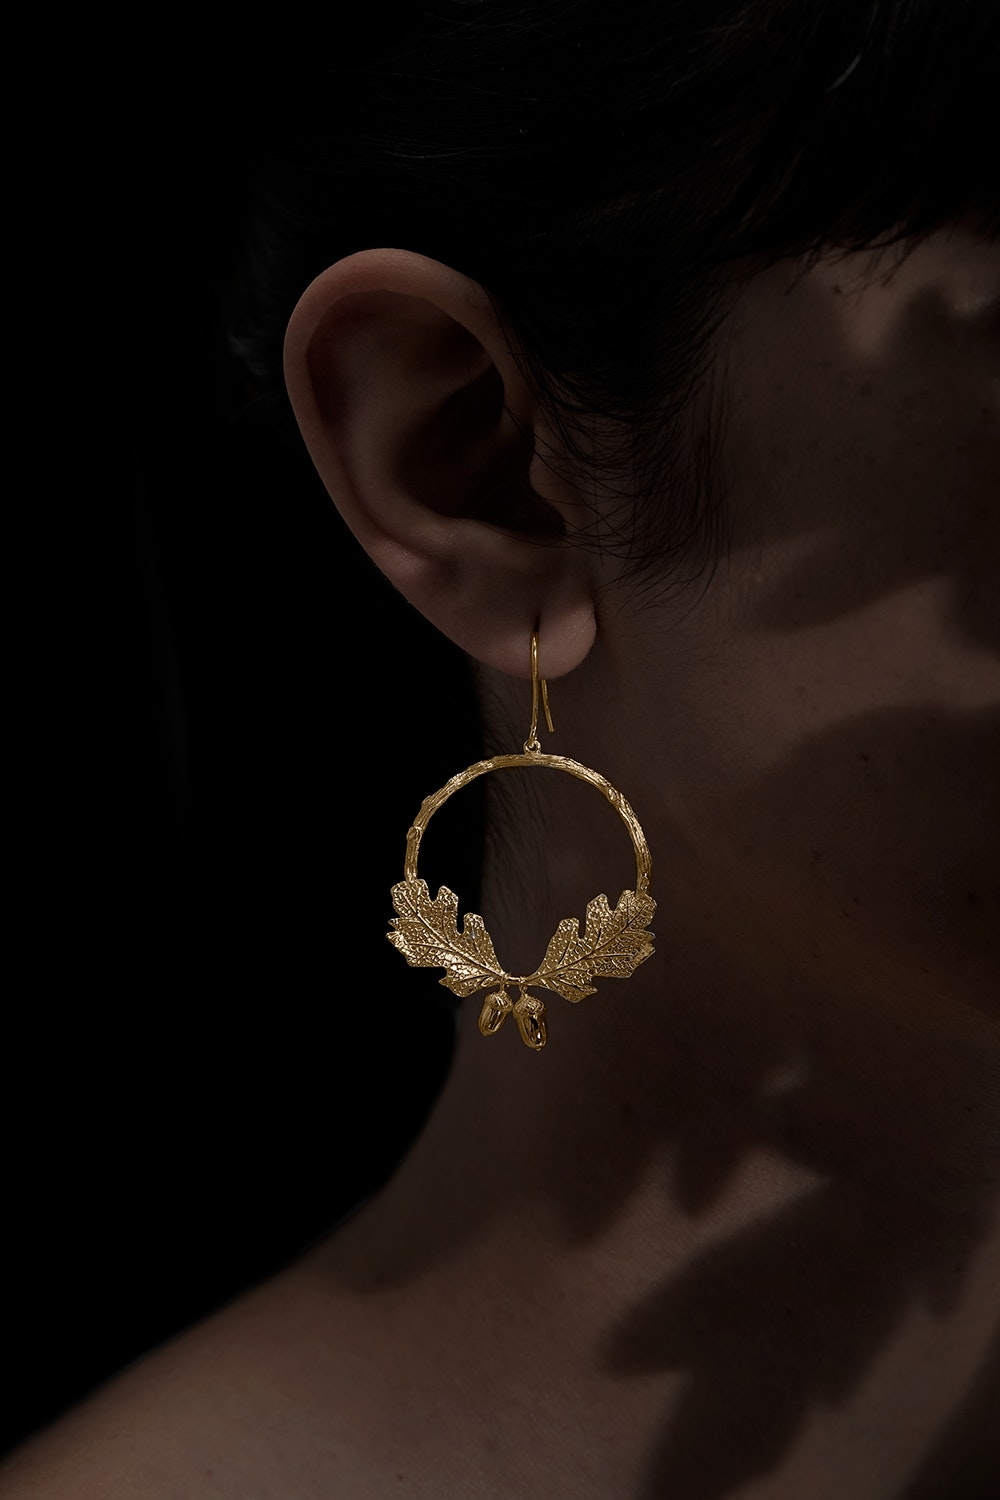 acorn-and-leaf-wreath-earrings-gold-kw3439y-gold-side-0823475001551771963_1551771930